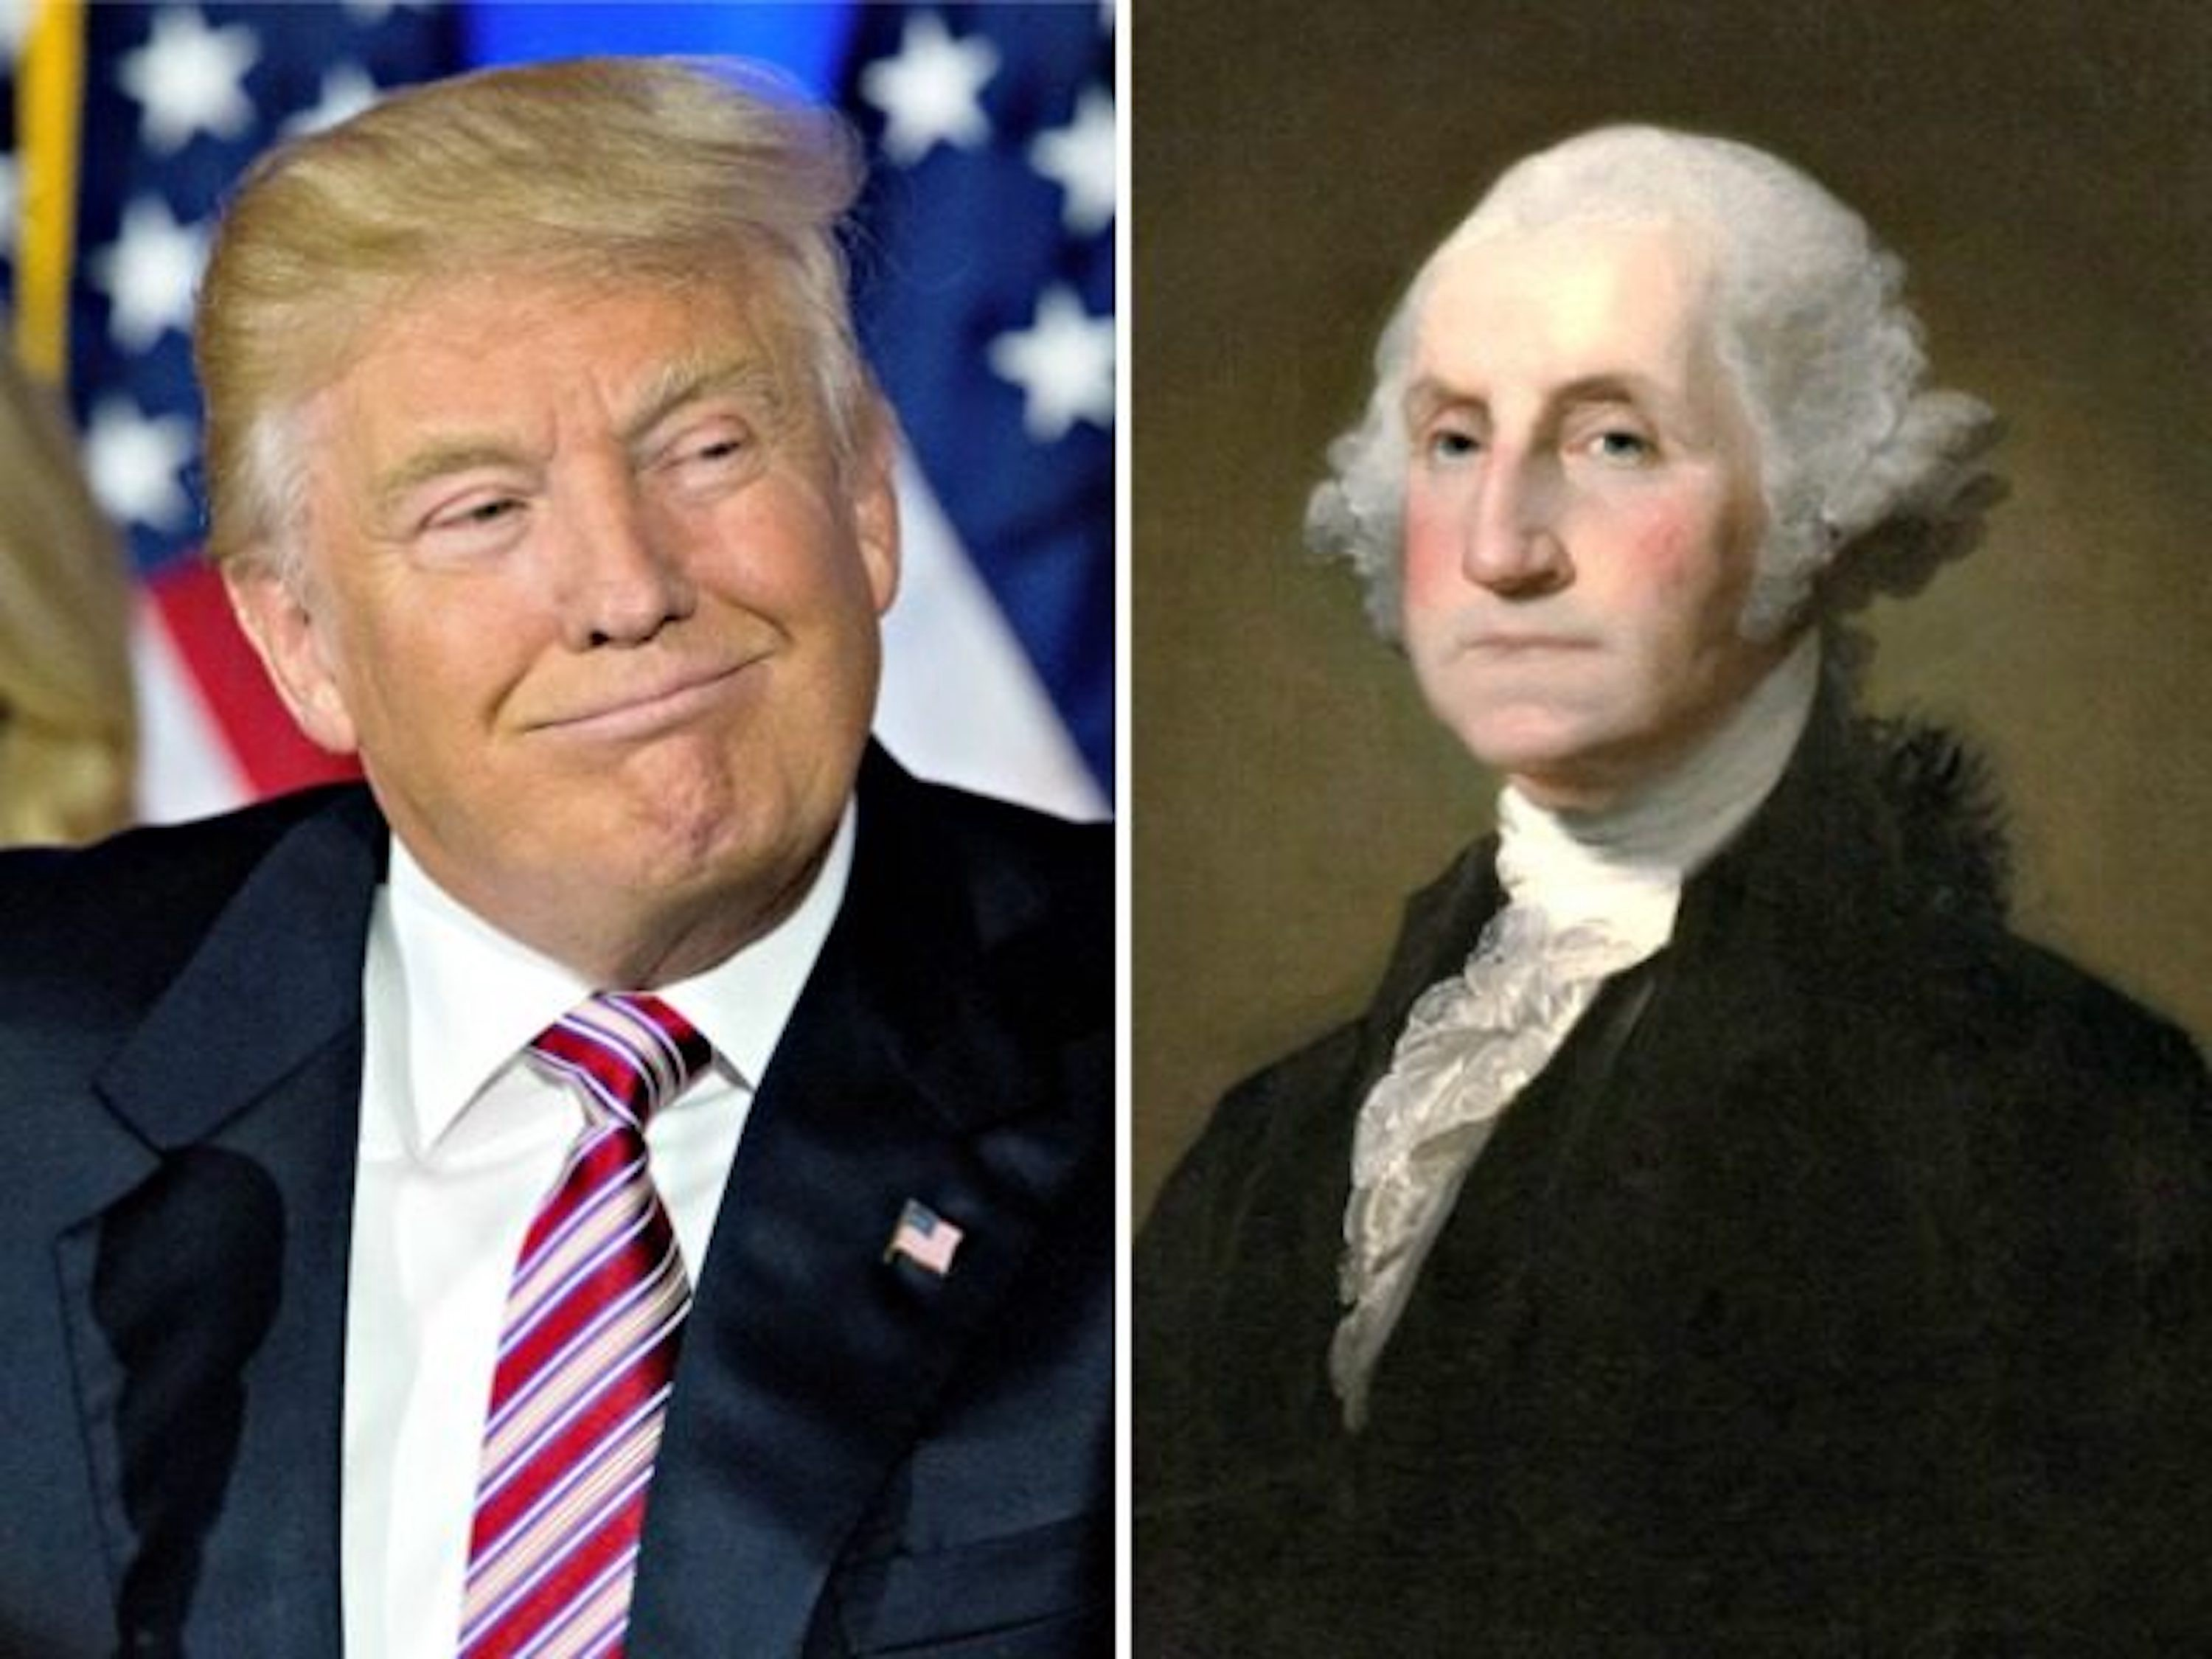 The Link Between Donald Trump and George Washington